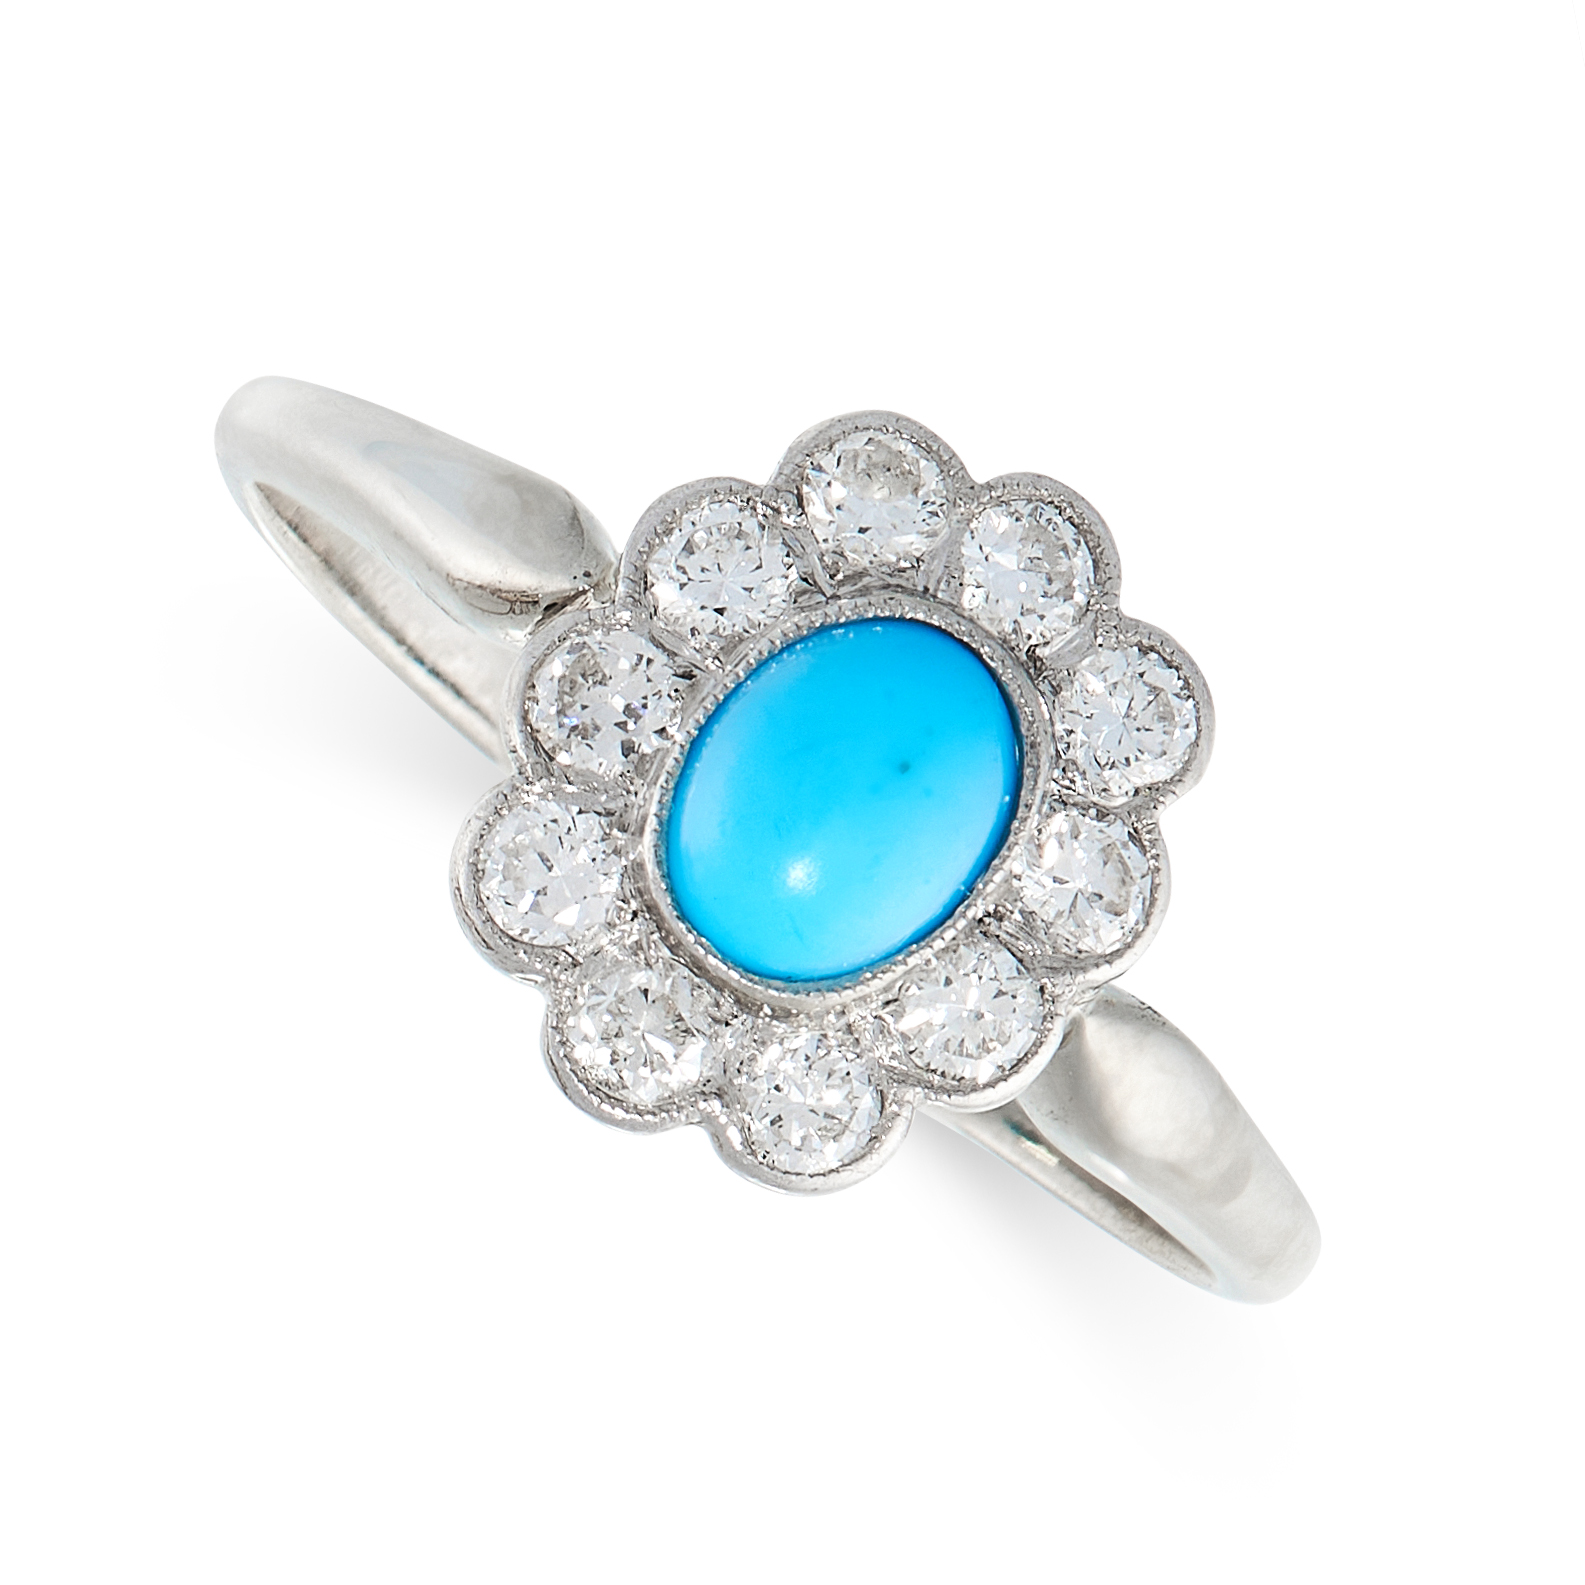 A VINTAGE TURQUOISE AND DIAMOND DRESS RING in 14ct white gold, set with an oval cabochon turquoise